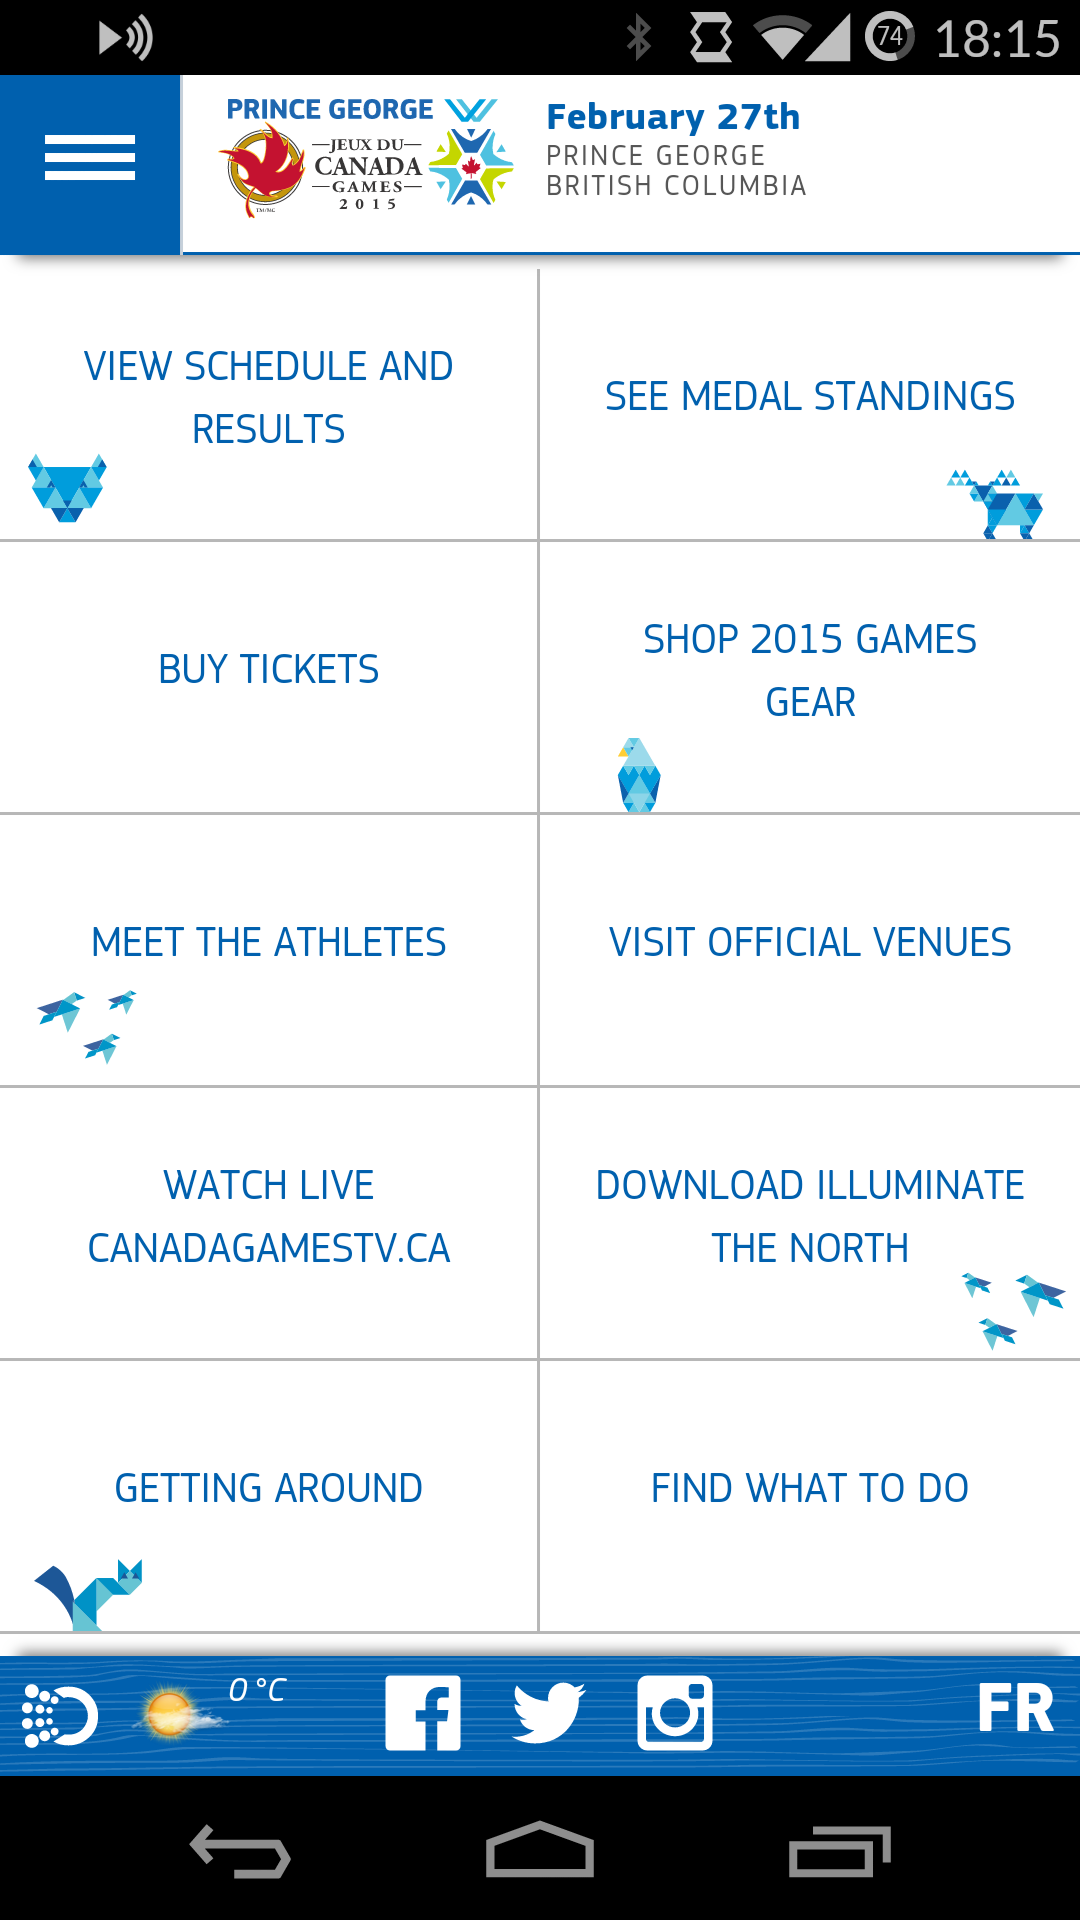 The mobile site of Canada Winter Games 2015 created by Opin